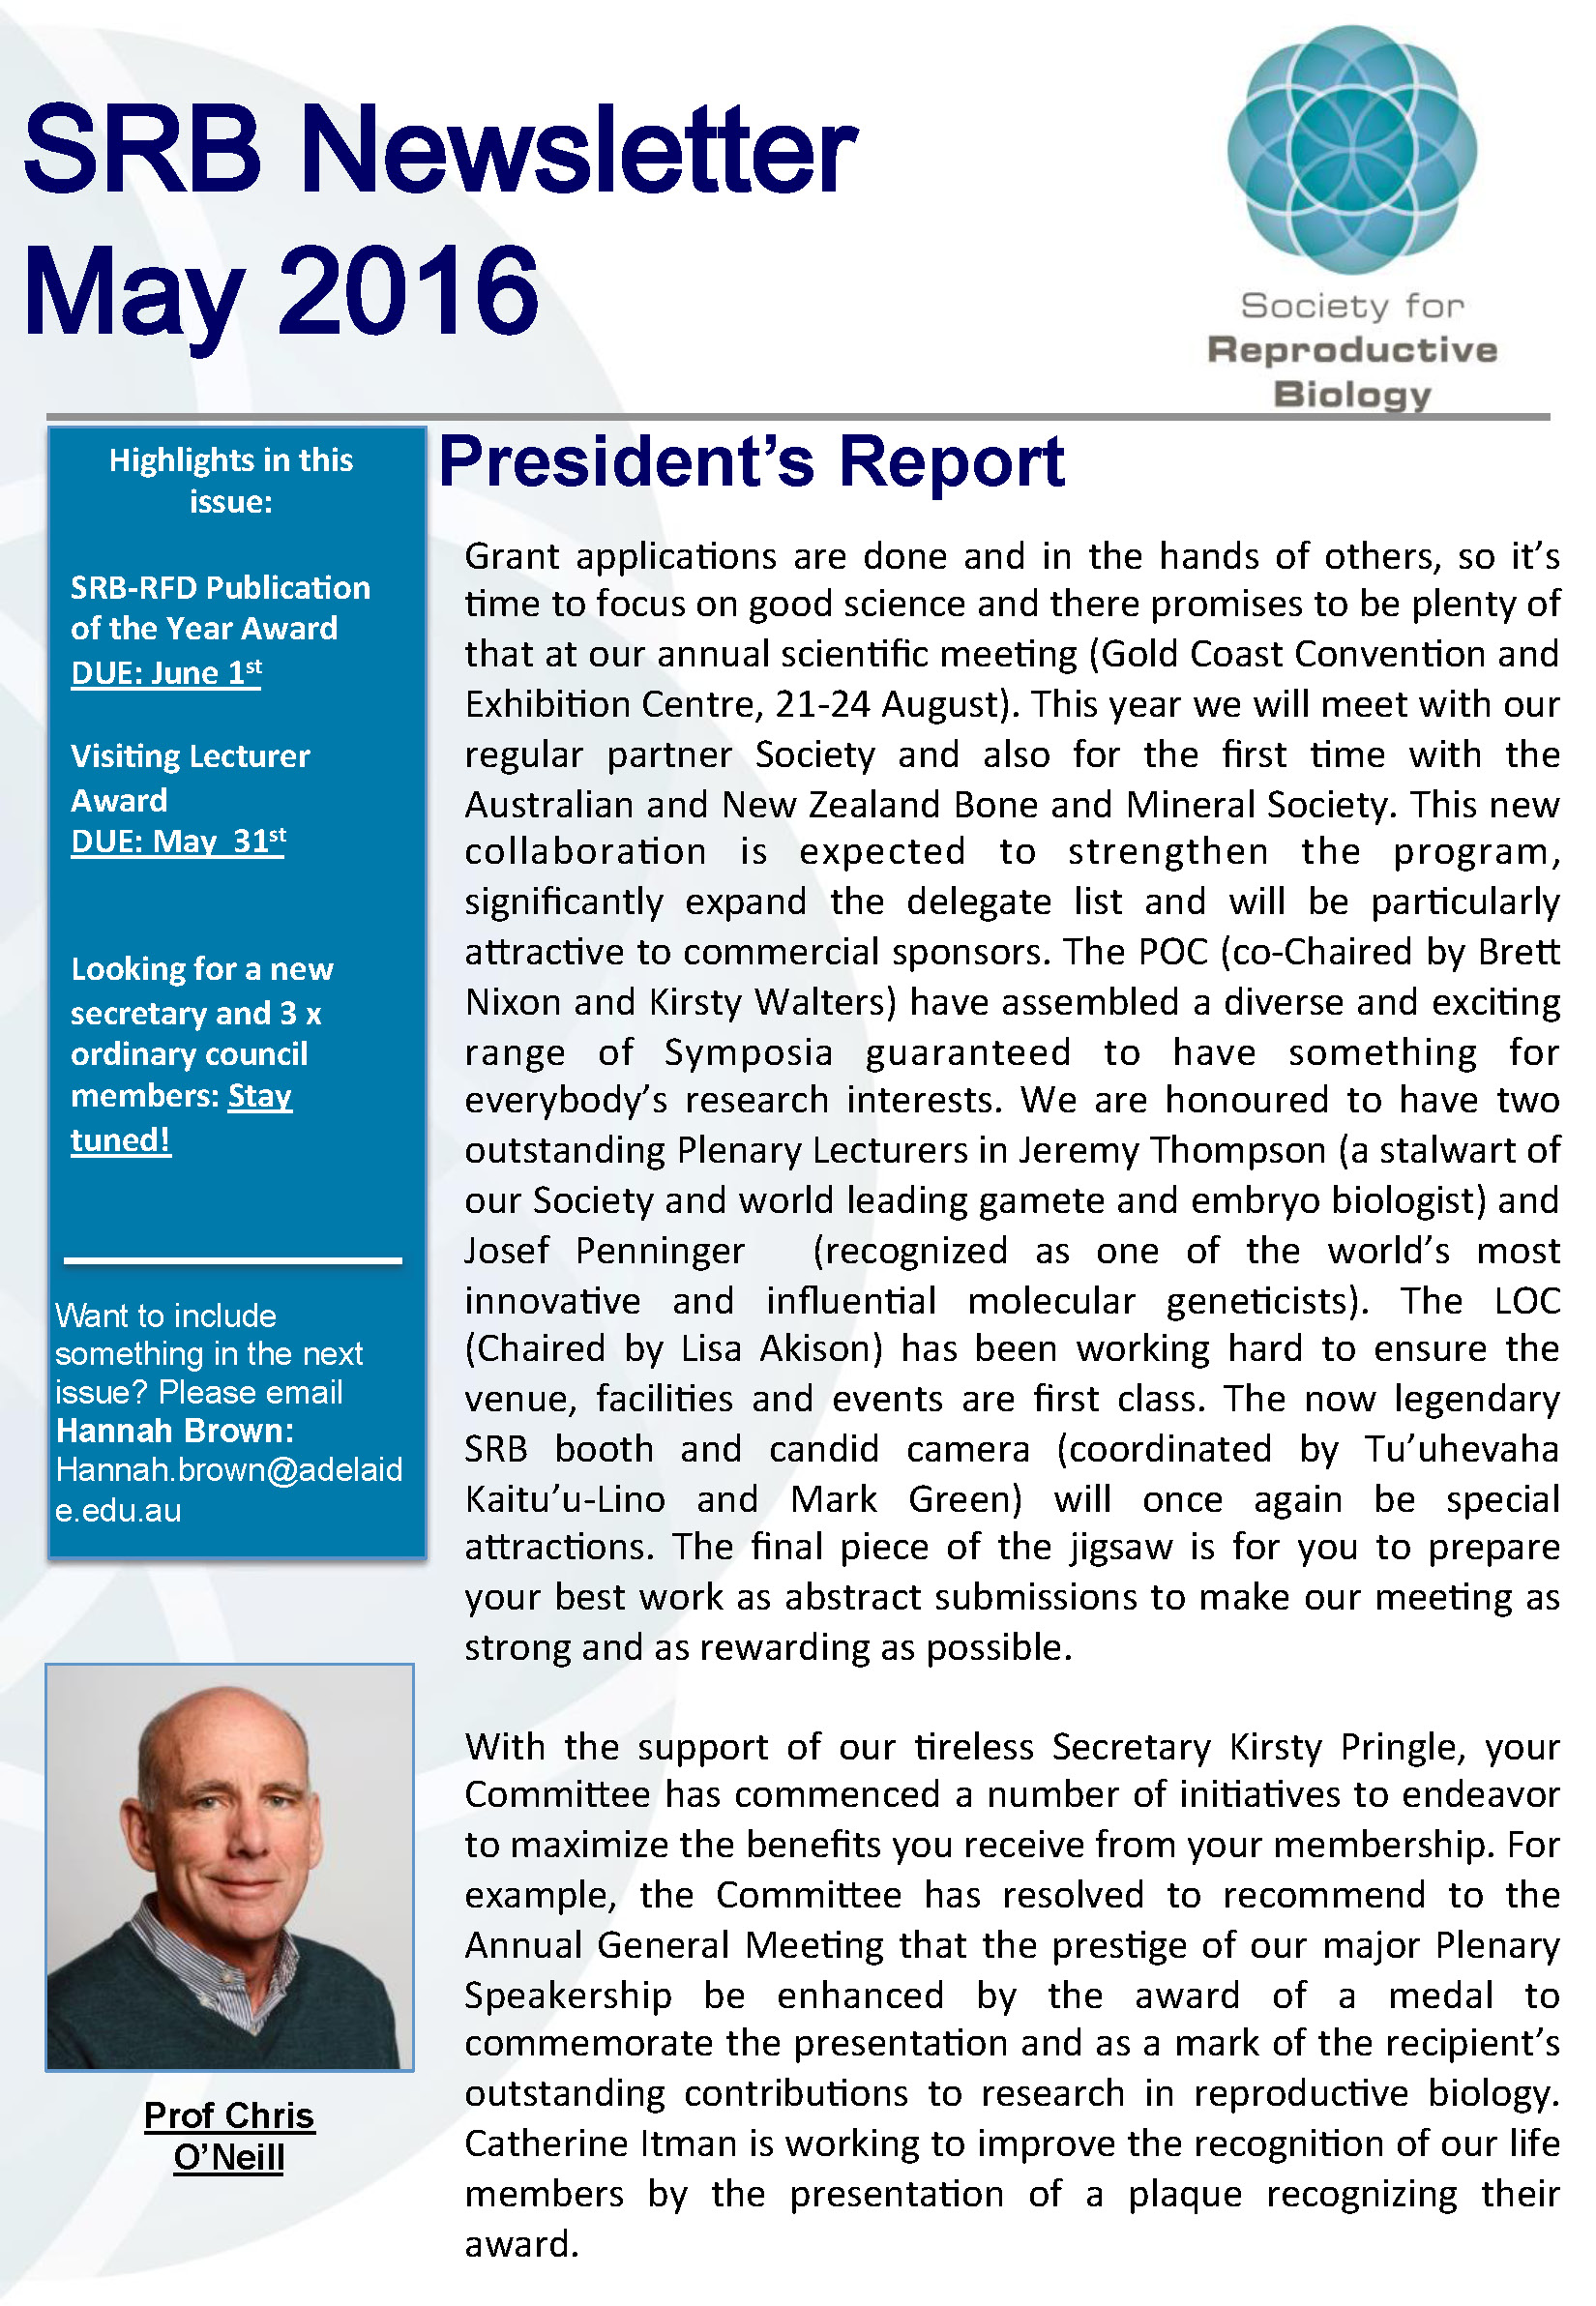 Final-SRB-Newsletter-May-2016-reduced-10052016-final_Page_01.jpg